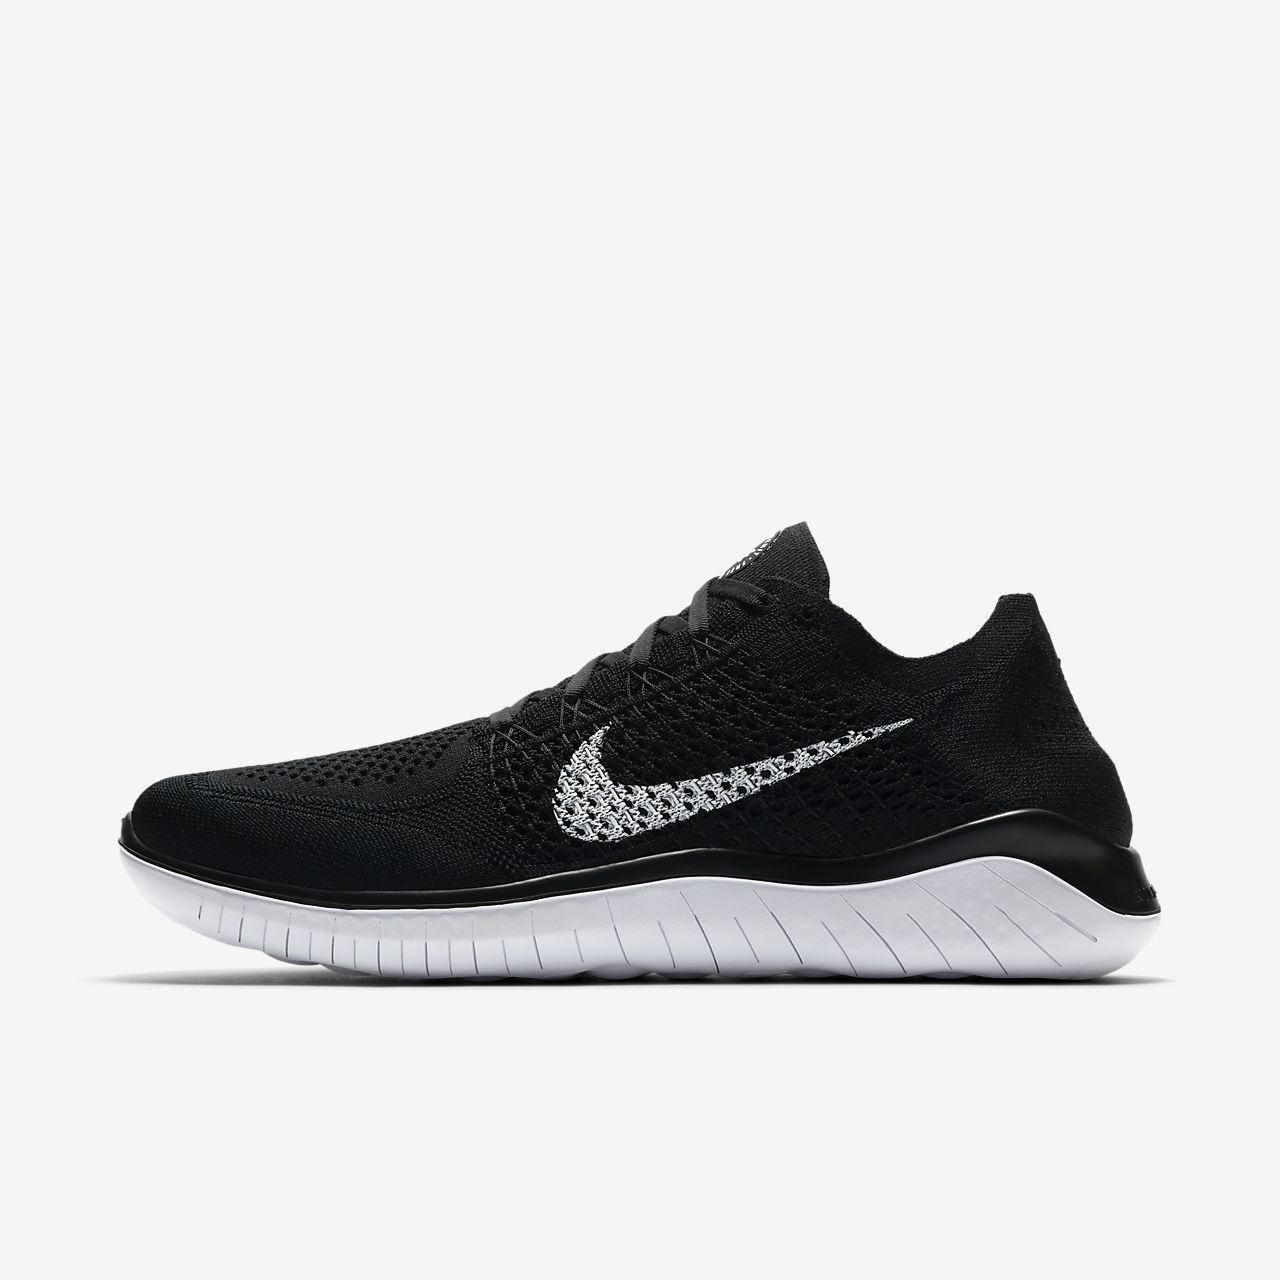 new style 7aa6e d4bb9 ... price nike free rn flyknit 2018løbesko til mænd f4fbf 236c0 discount  høst vinter 2018 nike dame free tr flyknit running trainers 718785 sneakers  sko ...